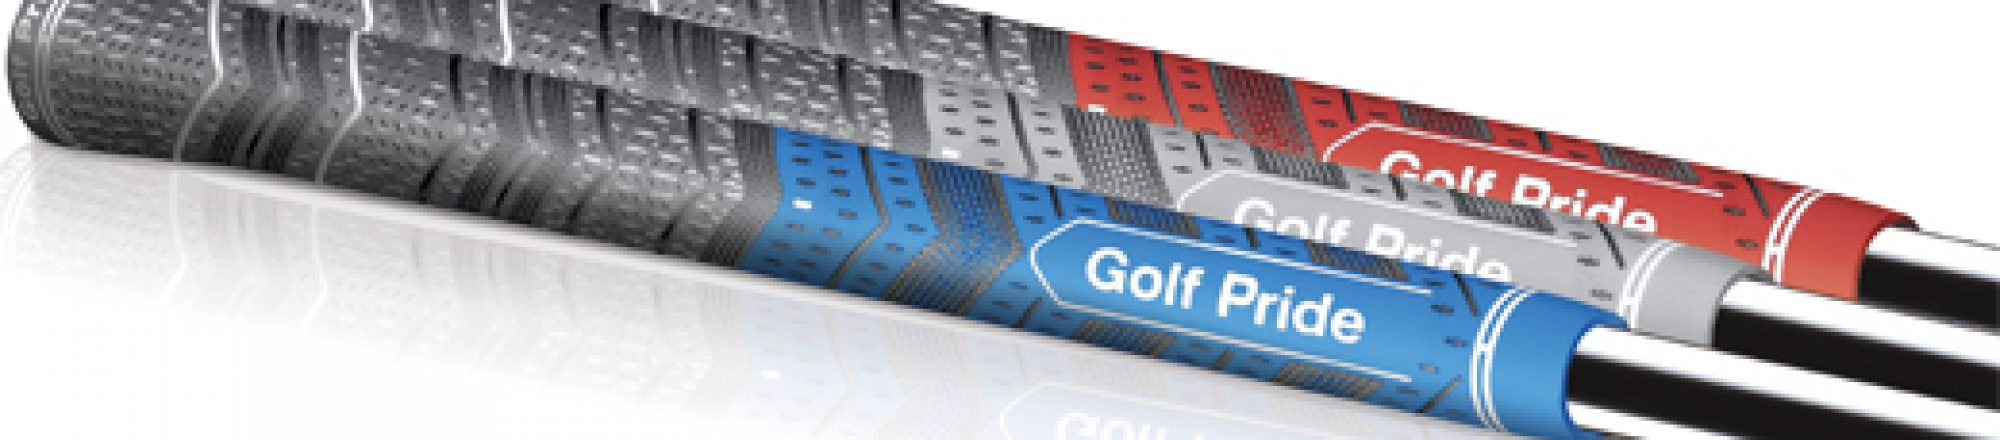 Equipment: How often should you re-grip your golf clubs?